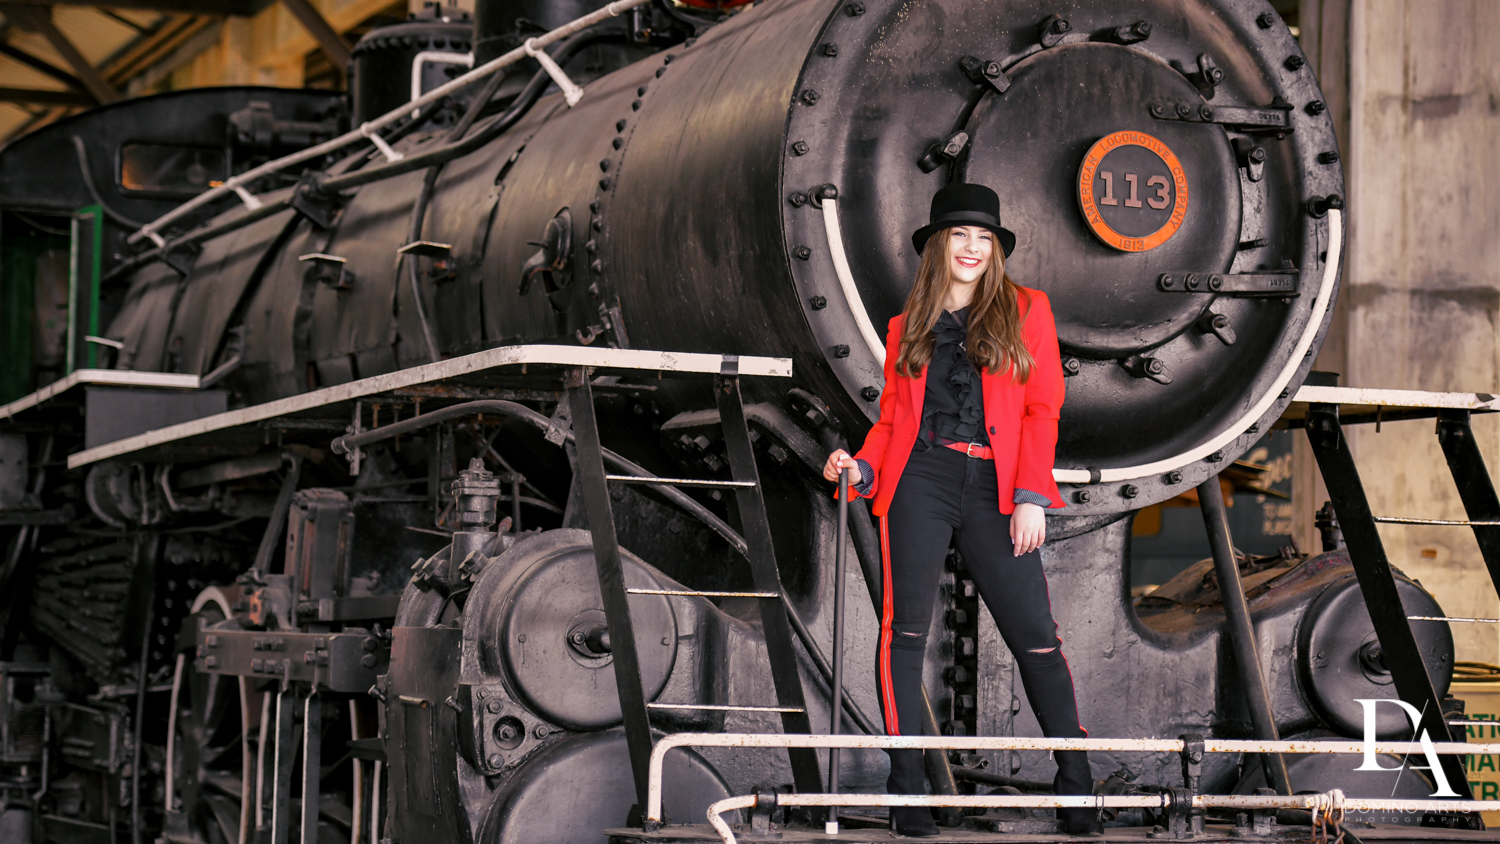 Greatest Showman themed Bat Mitzvah Pre Session at Goldcoast Railroad Museum by Domino Arts Photography